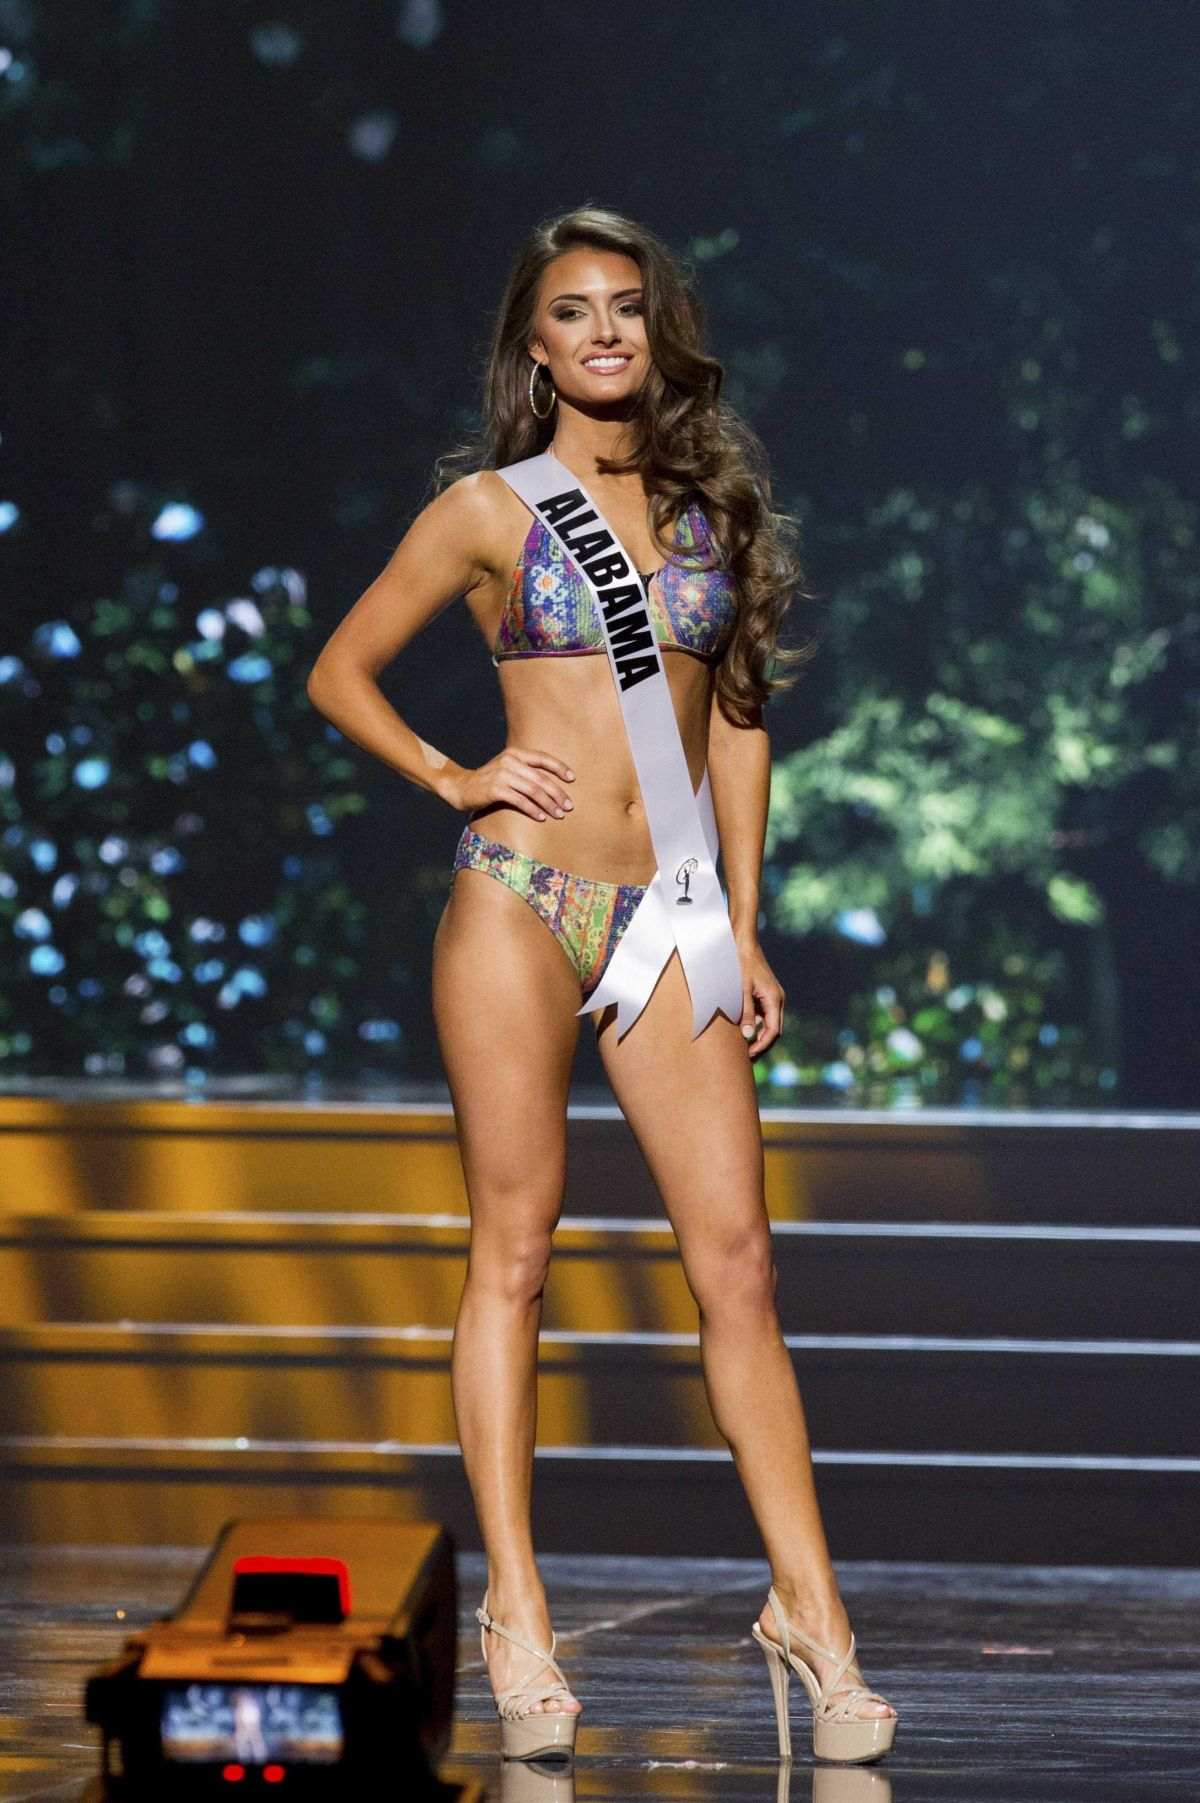 JESICA ALHBERG at Miss USA 2014 Preliminary Competition